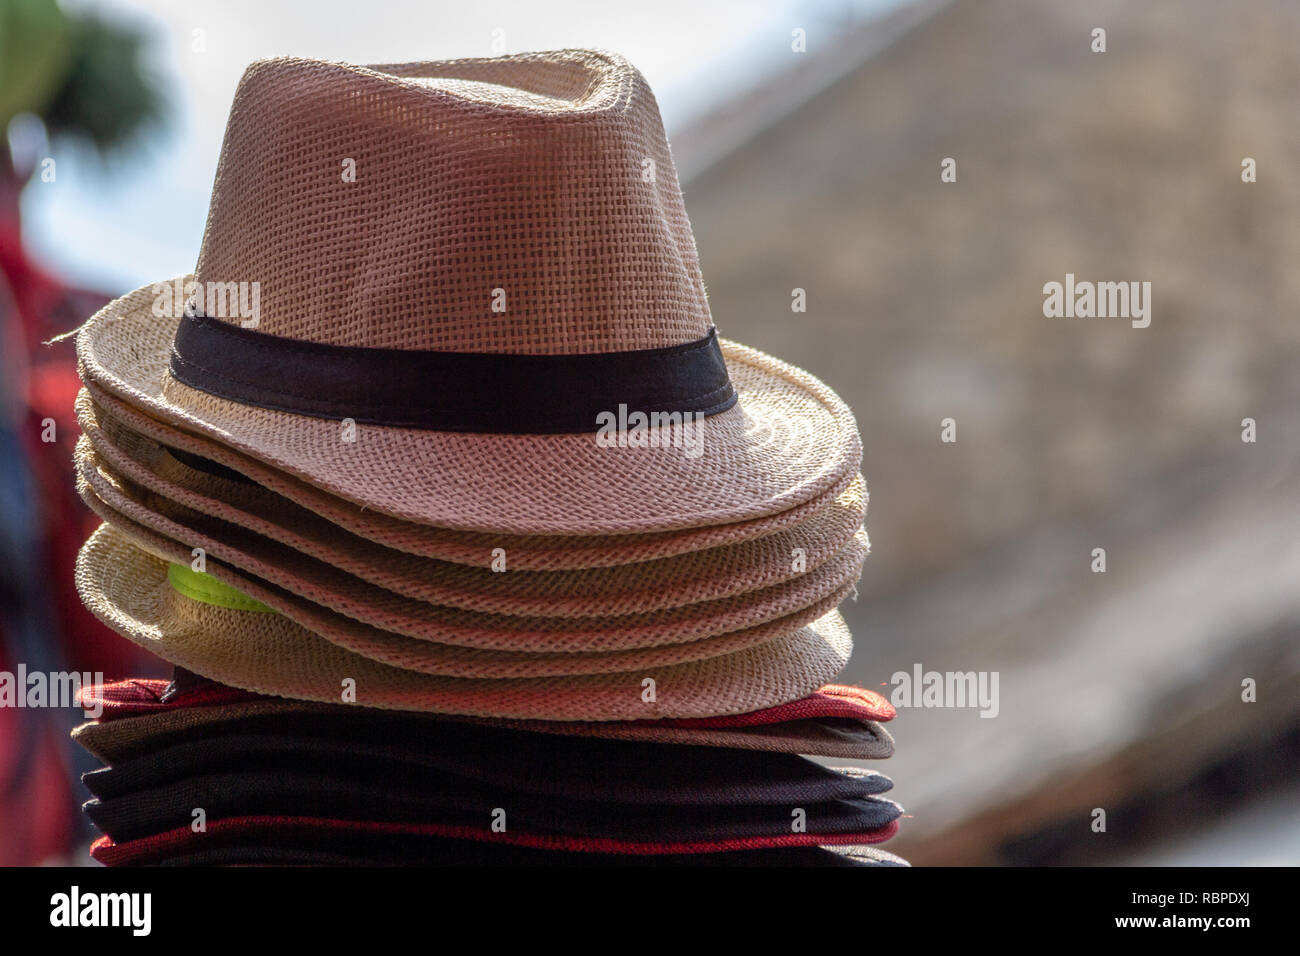 93f59e40 A stack of straw fedora hats in multiple colors with different colored  bands with a blurred